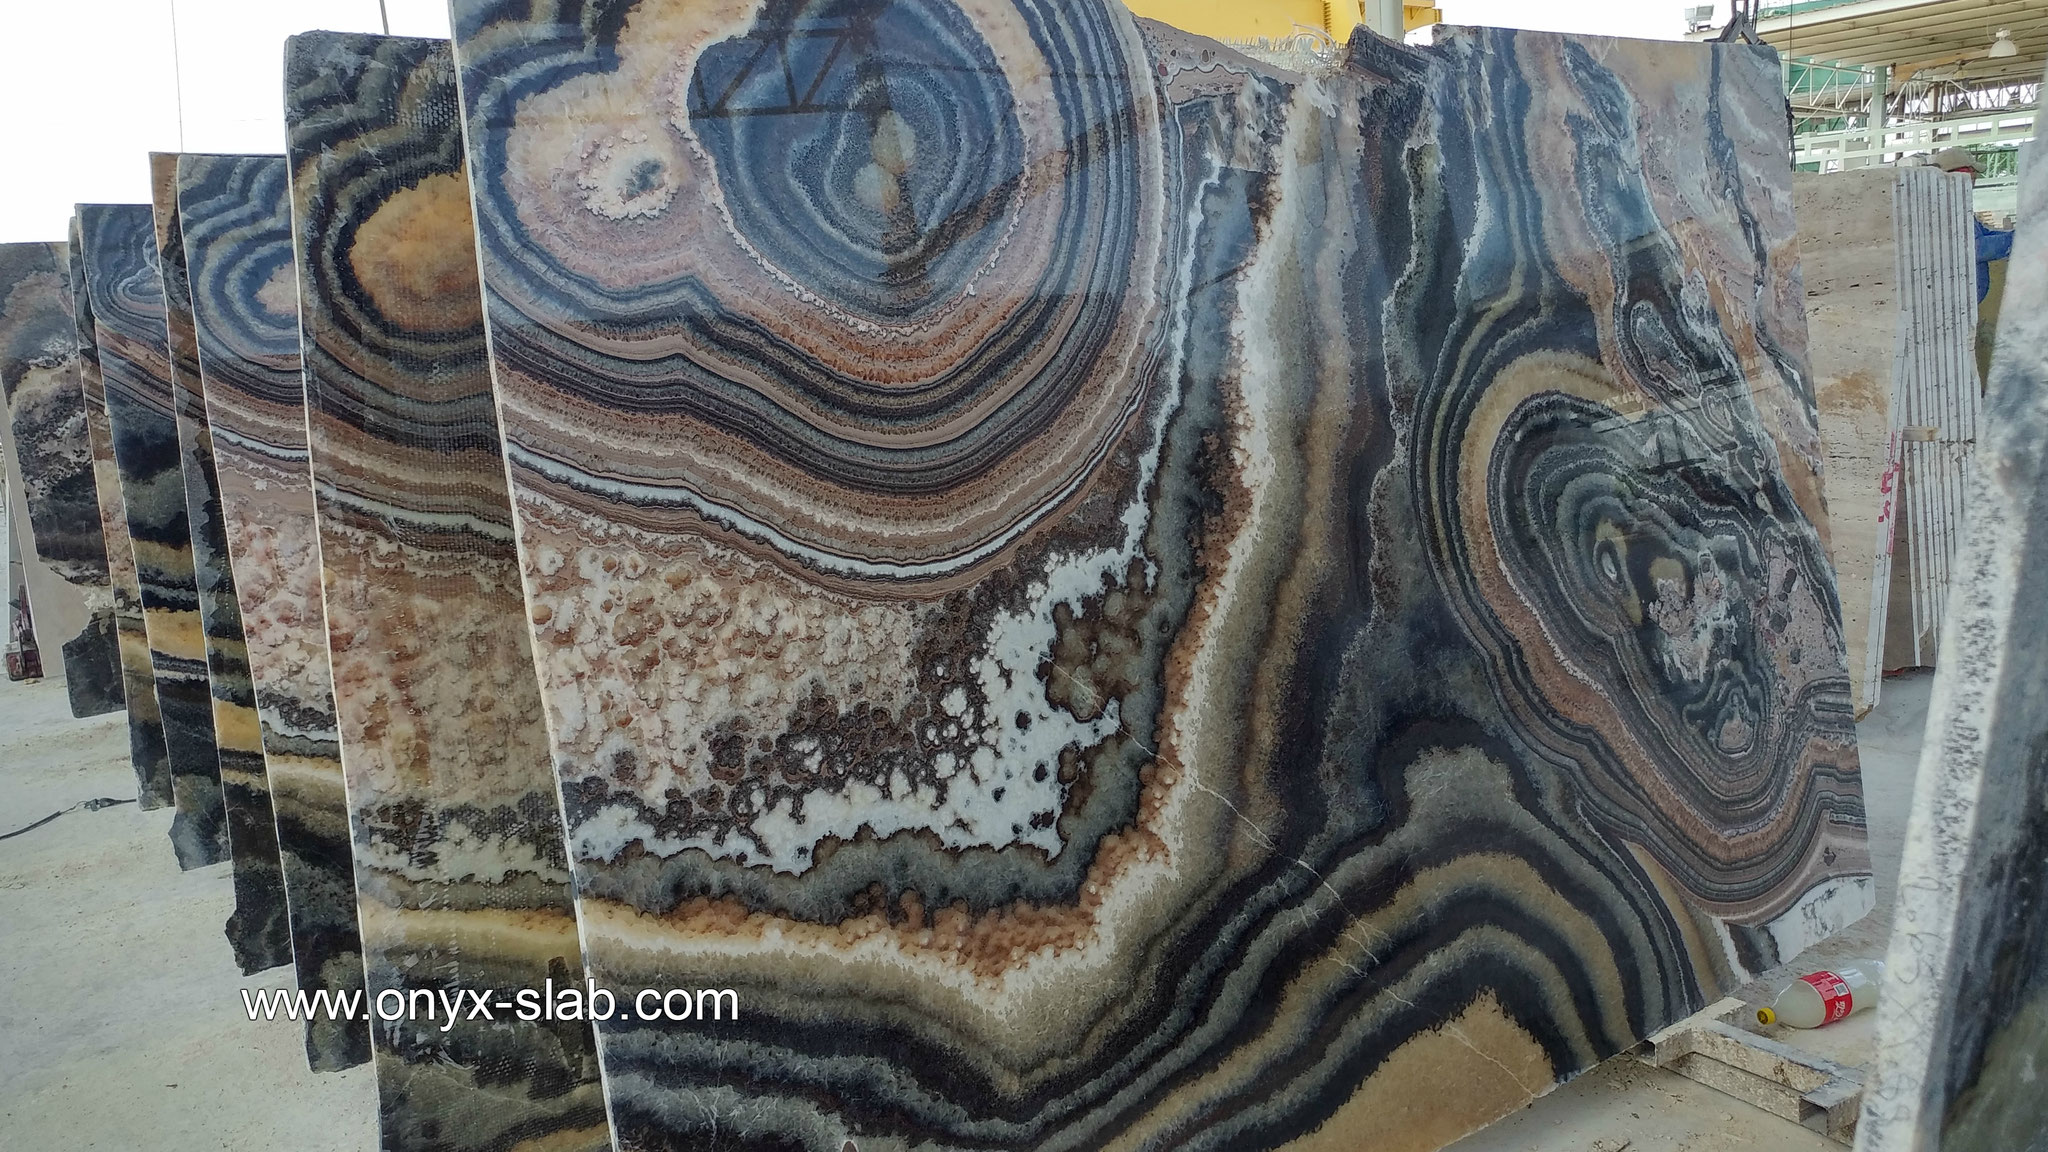 Onyx Slabs, black onyx slabs, Onyx Slabs Price, onyx stone slabs for sale, onyx slab cost, onyx countertops Price, bookmatched onyx slabs